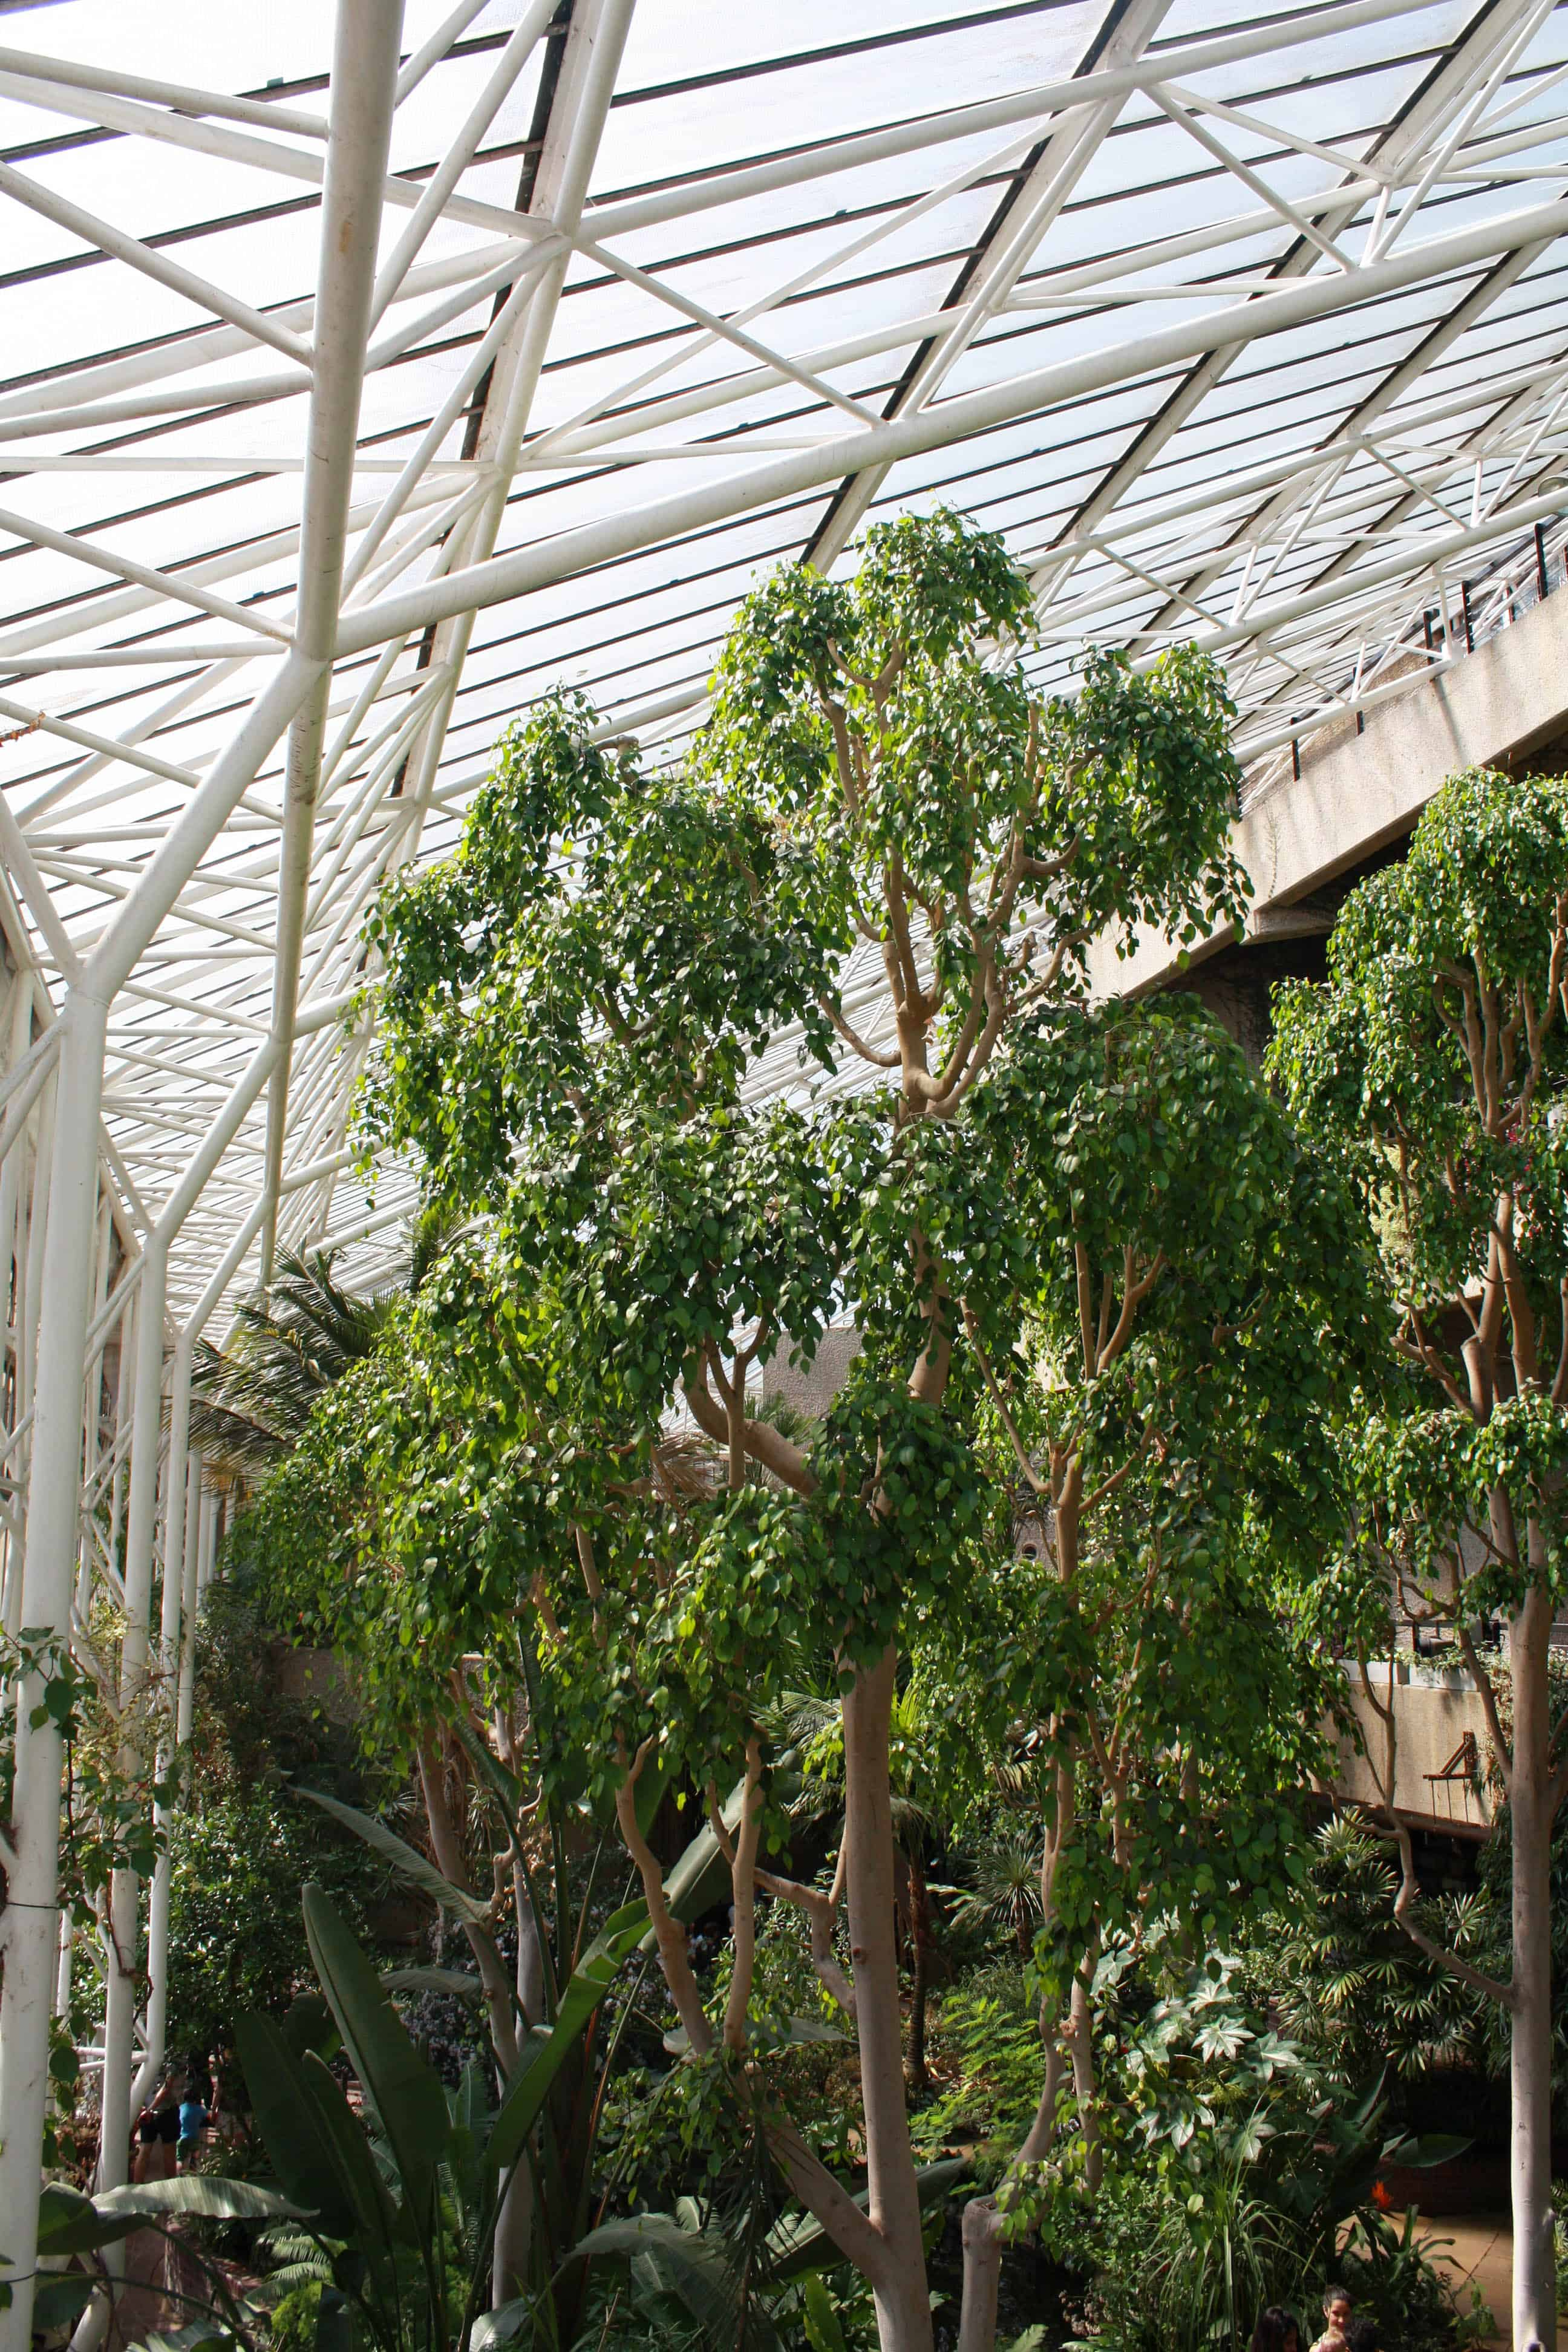 Treetops in Barbican Conservatory, London